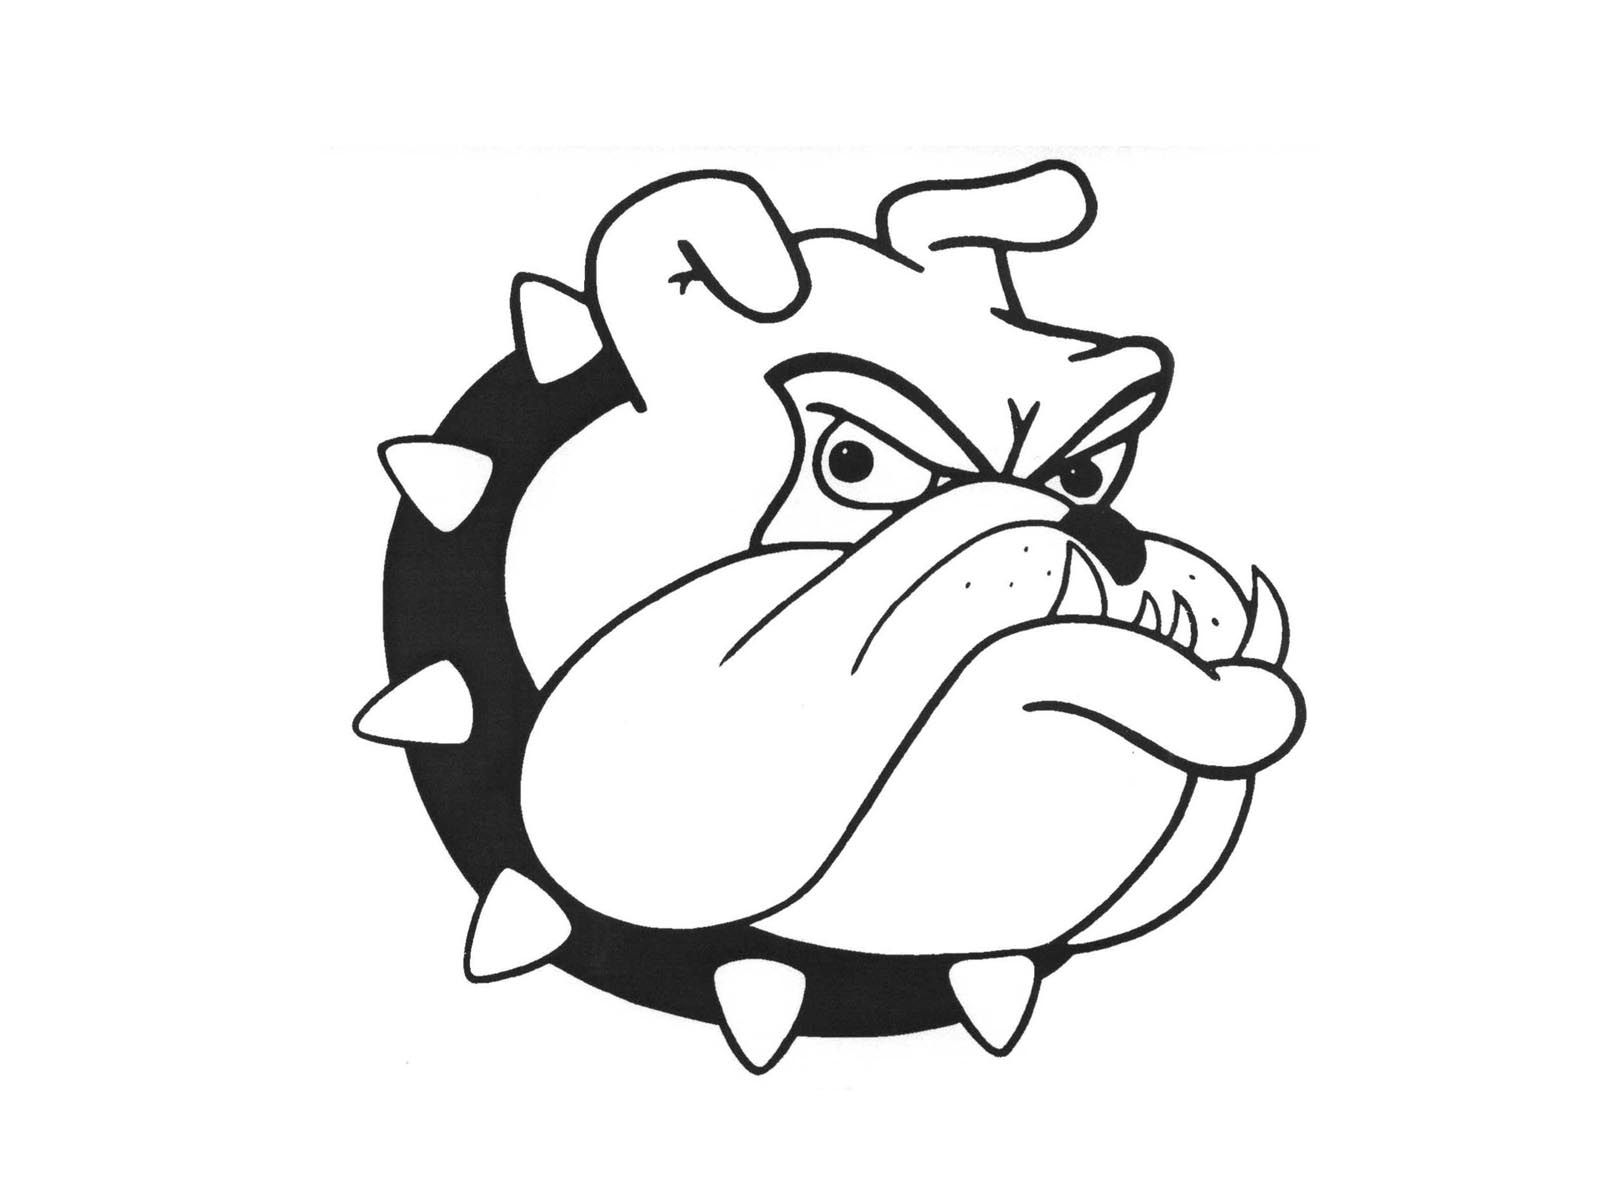 14 cartoon bulldog images free cliparts that you can download to you [ 1600 x 1200 Pixel ]